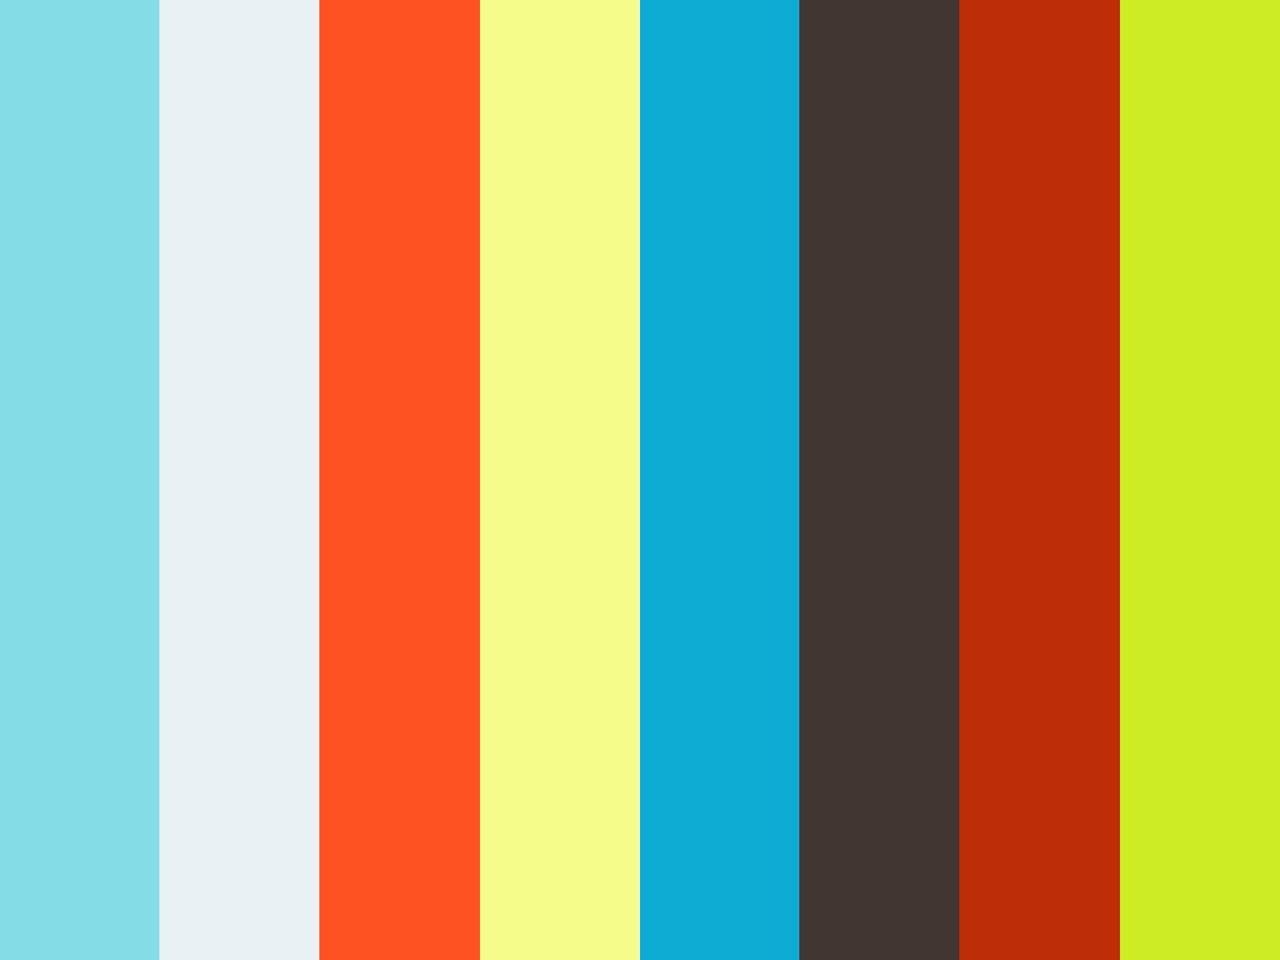 Pastor Appreciation & Birthday Video 9-21-14 HD on Vimeo